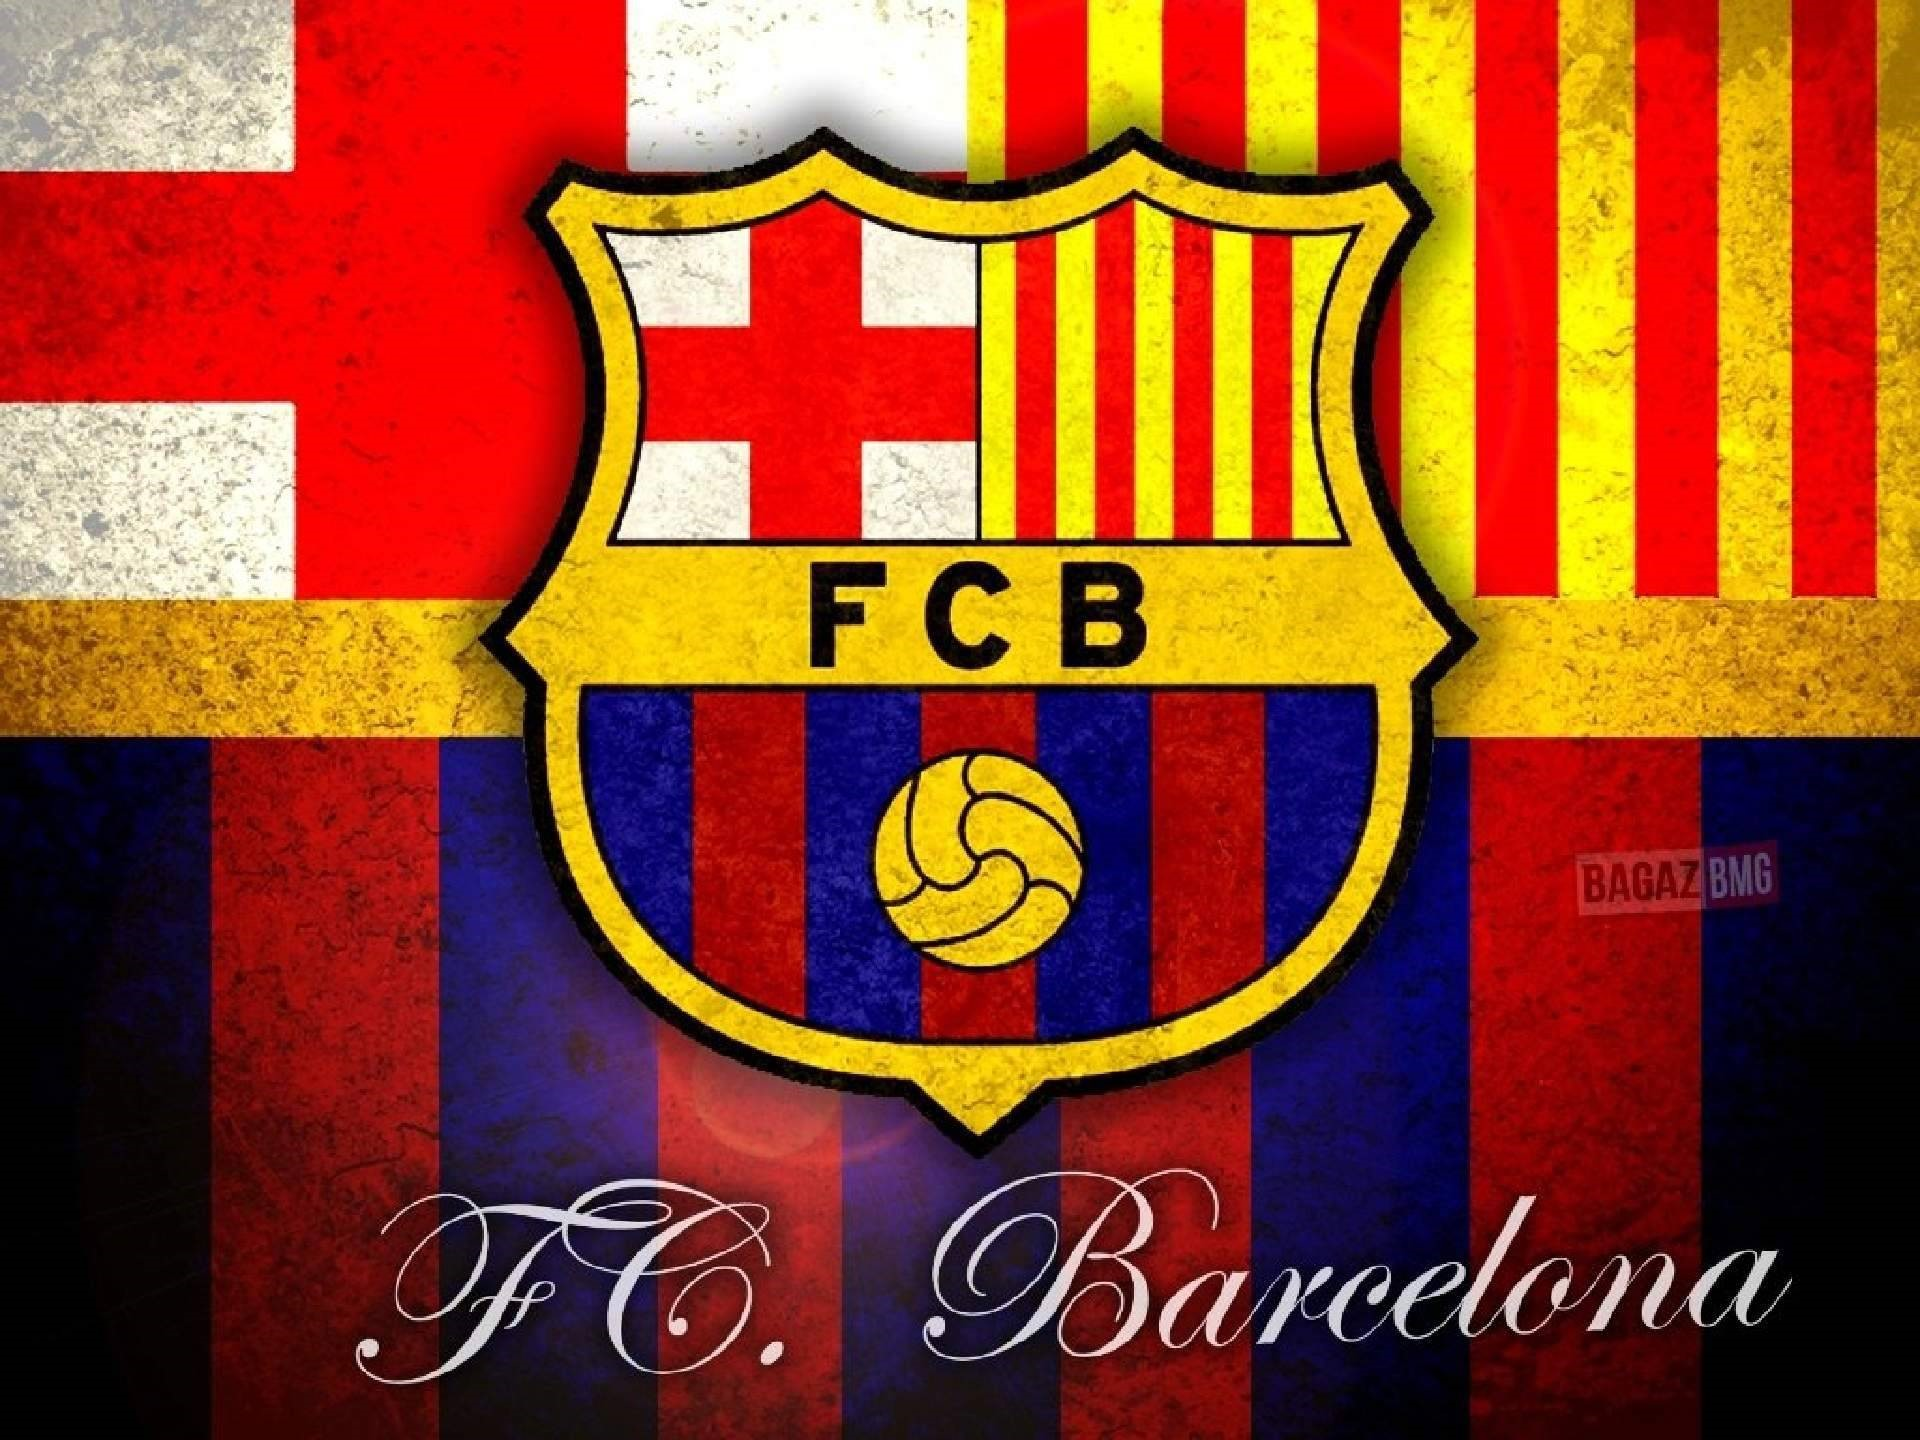 Pictures of FC Barcelona